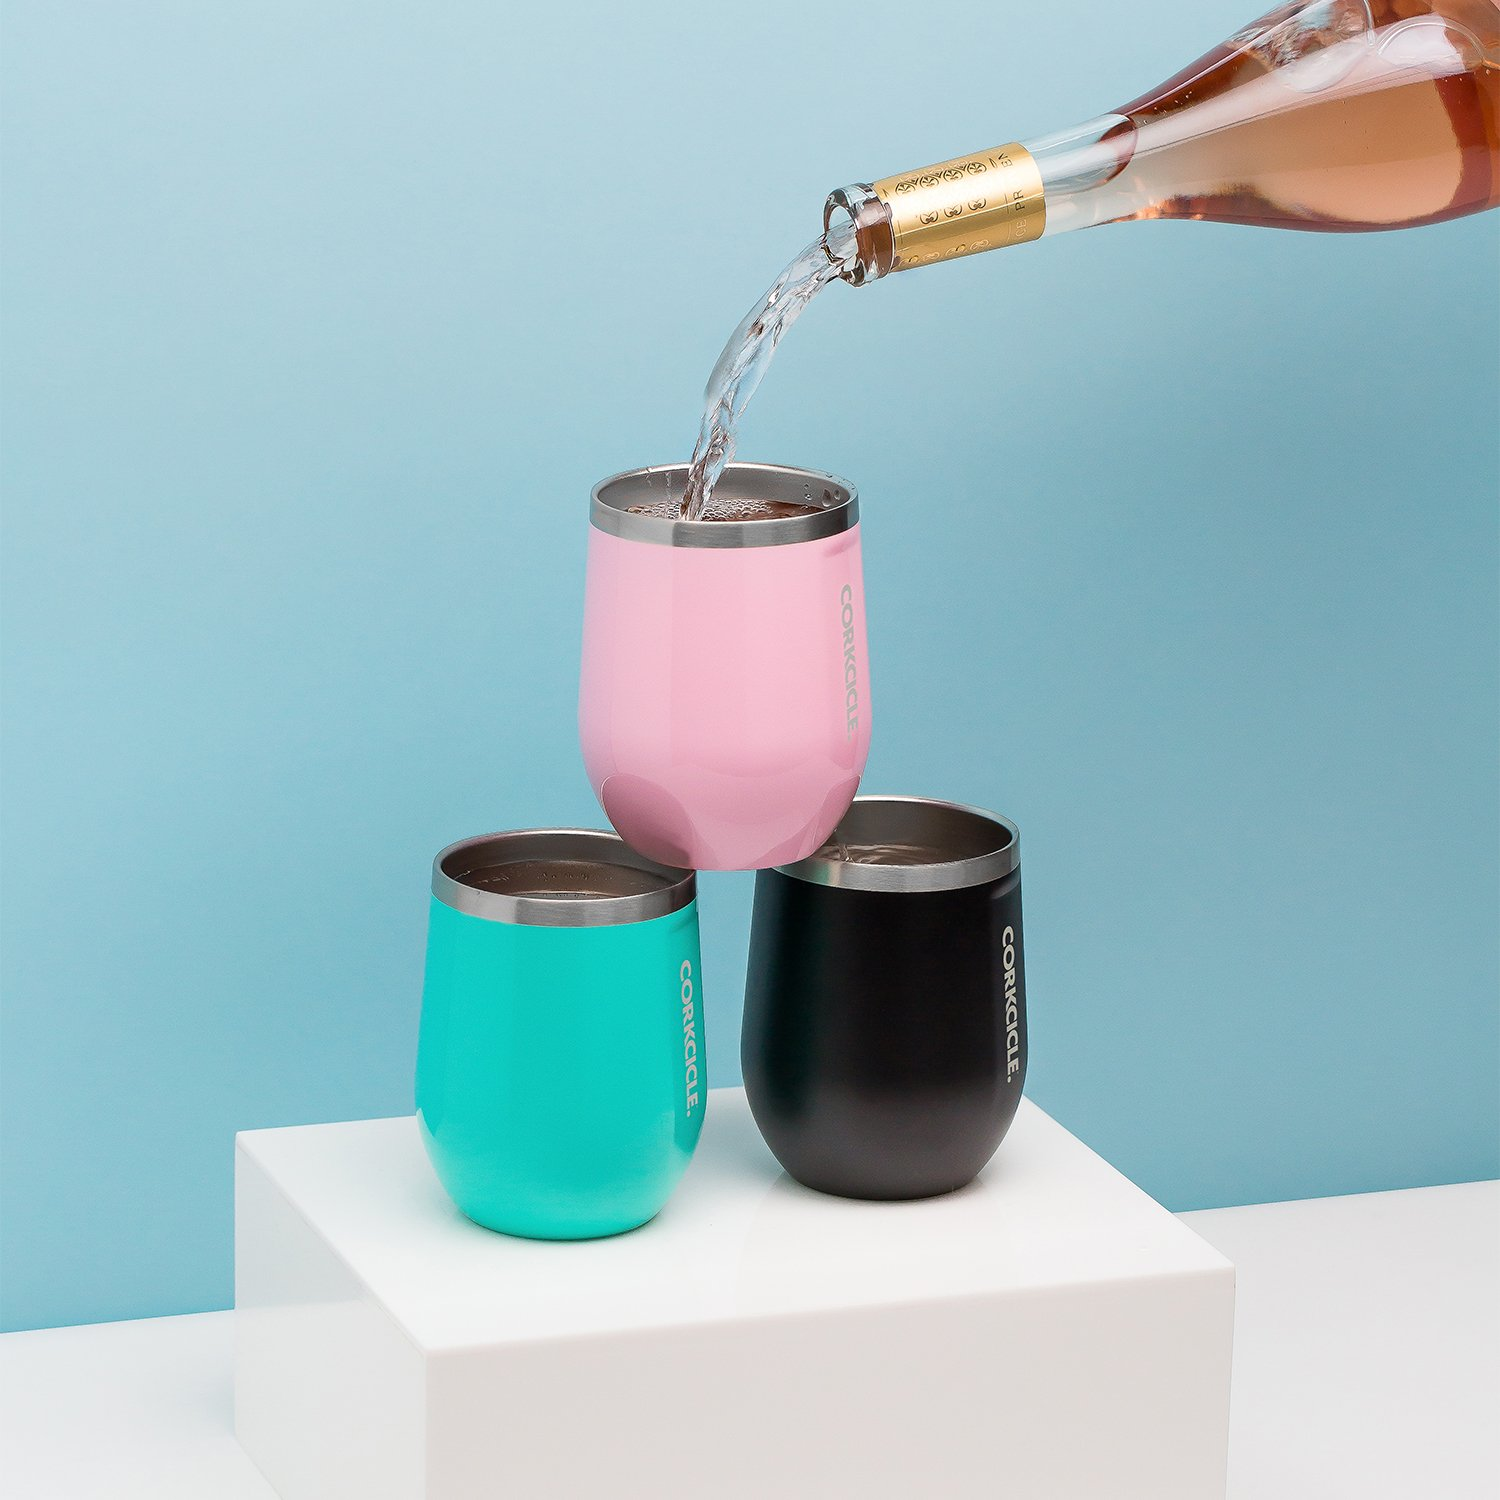 Corkcicle 12 oz Triple-Insulated Stemless Glass (Perfect for Wine) - Unicorn Magic by Corkcicle (Image #4)